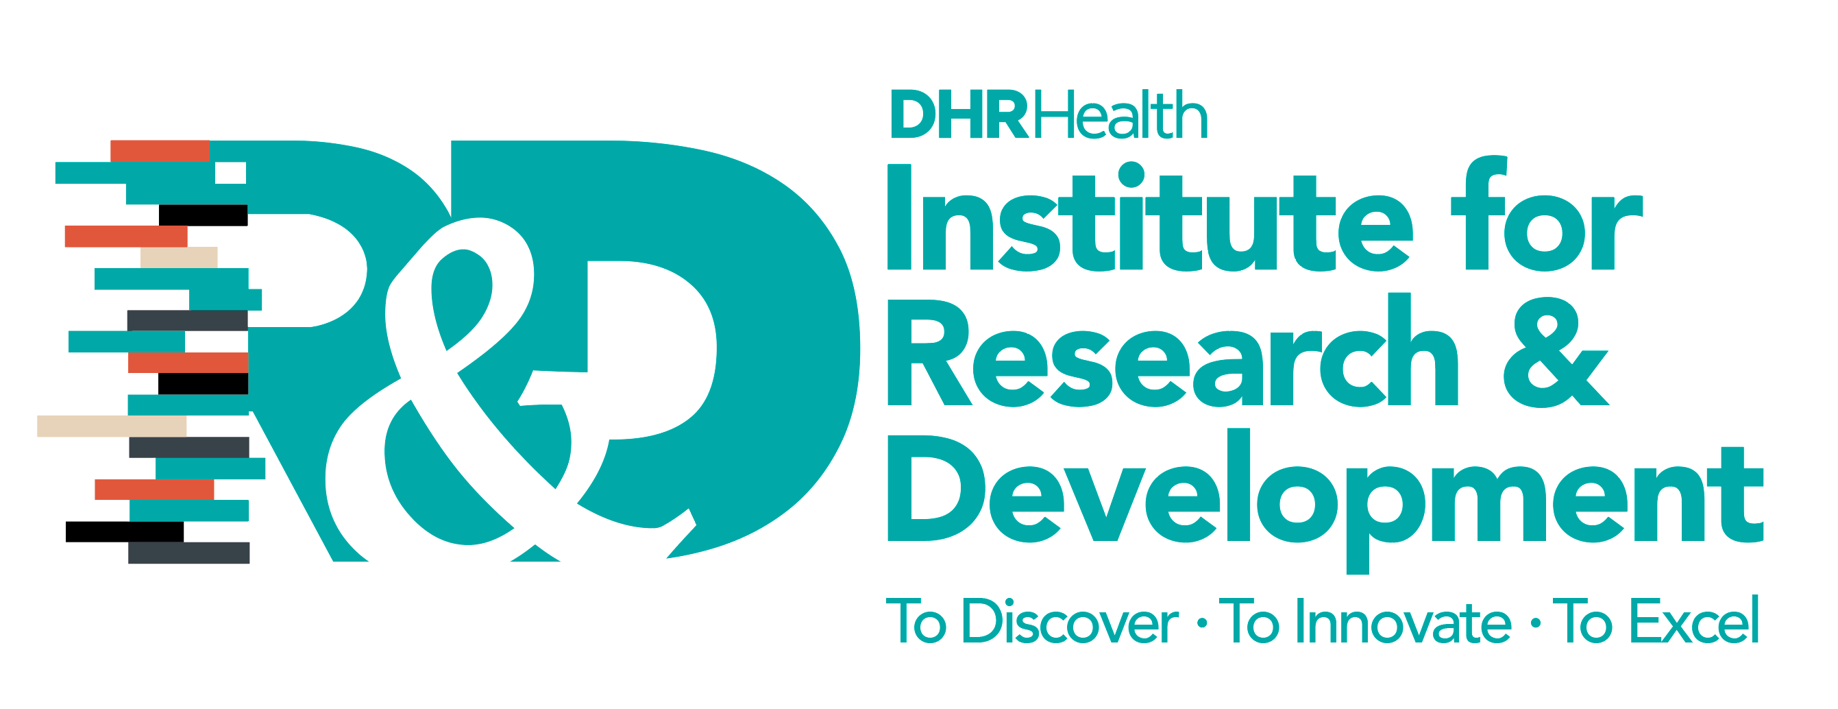 DHR Health Institute for Research & Development